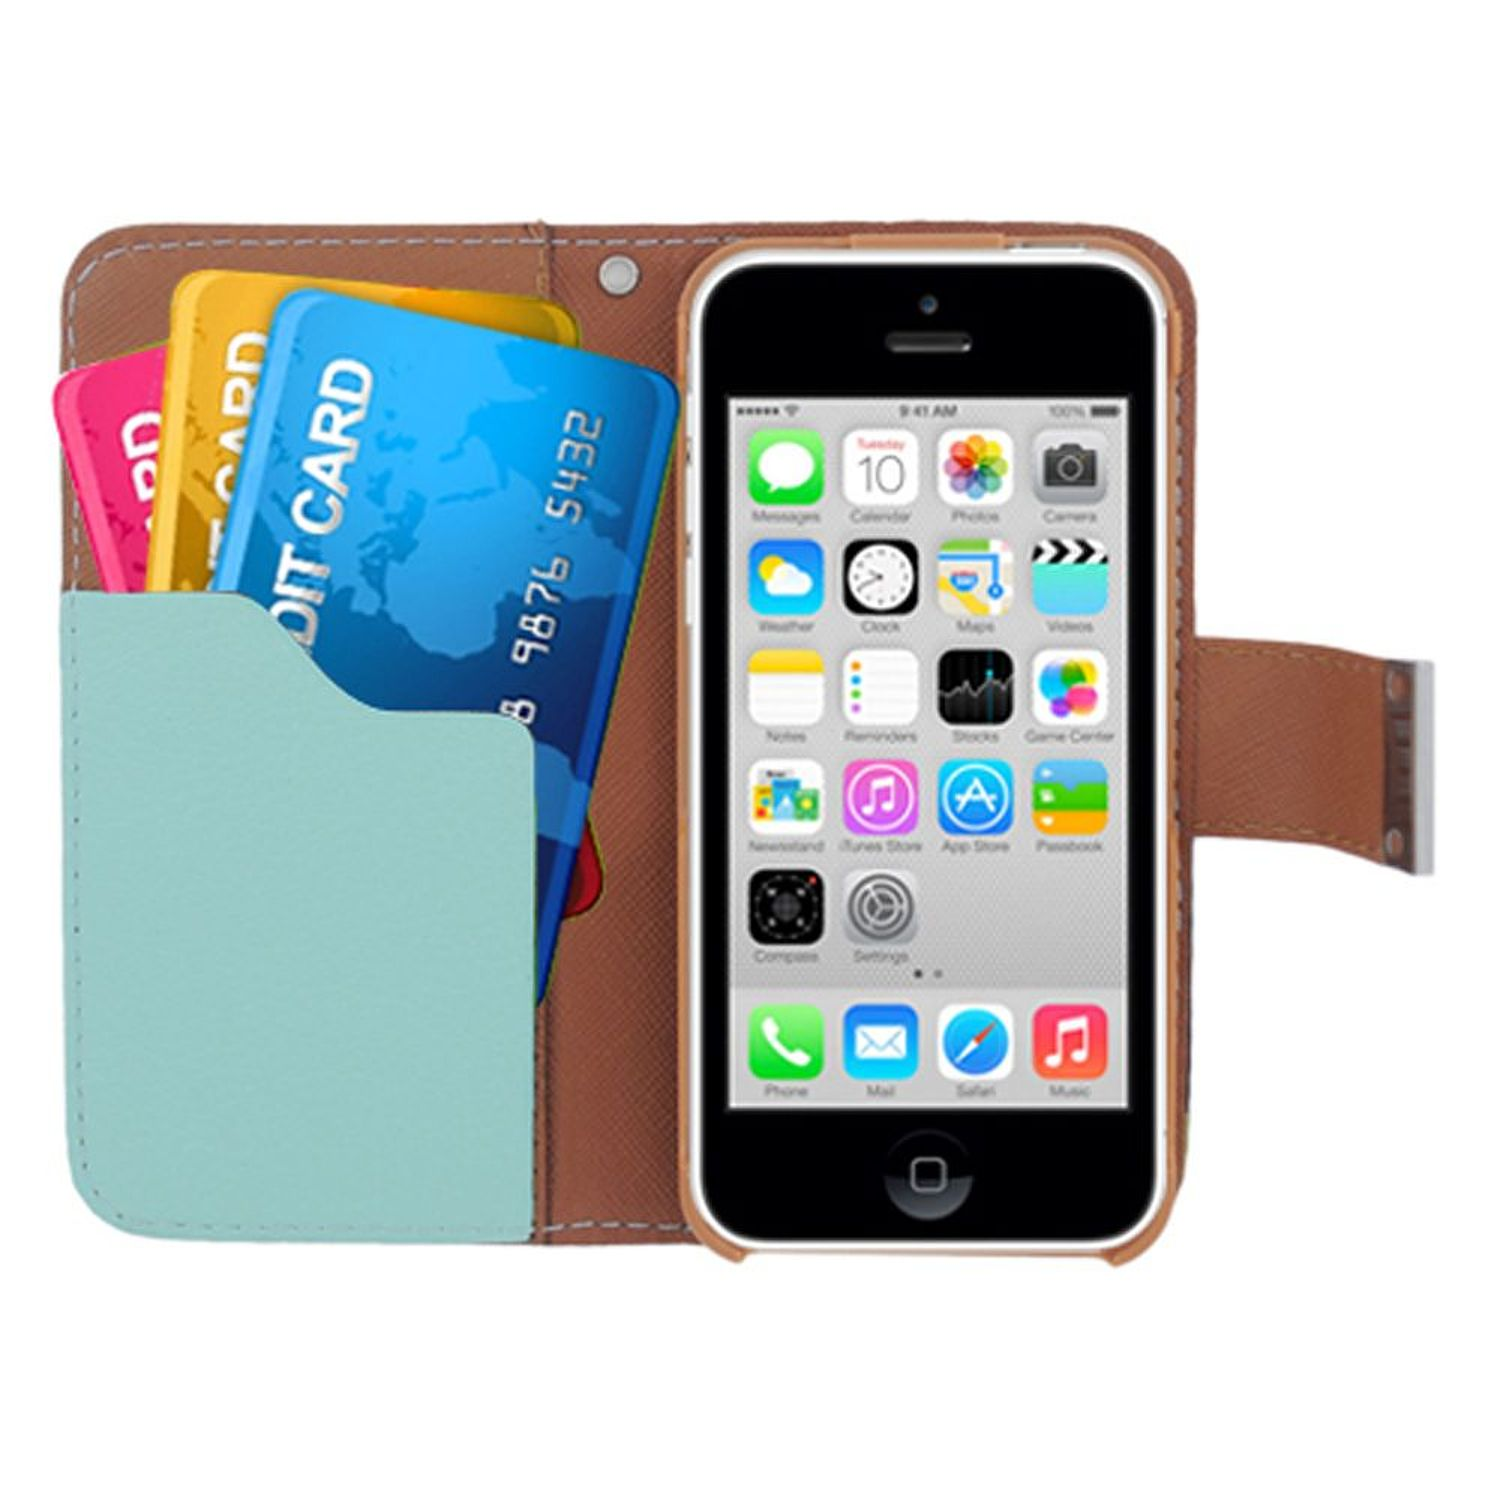 Insten Multicolor Folio Flip Leather [Card Holder Slot] Wallet Pouch Case Cover For Apple iPhone 5C, Blue/Green